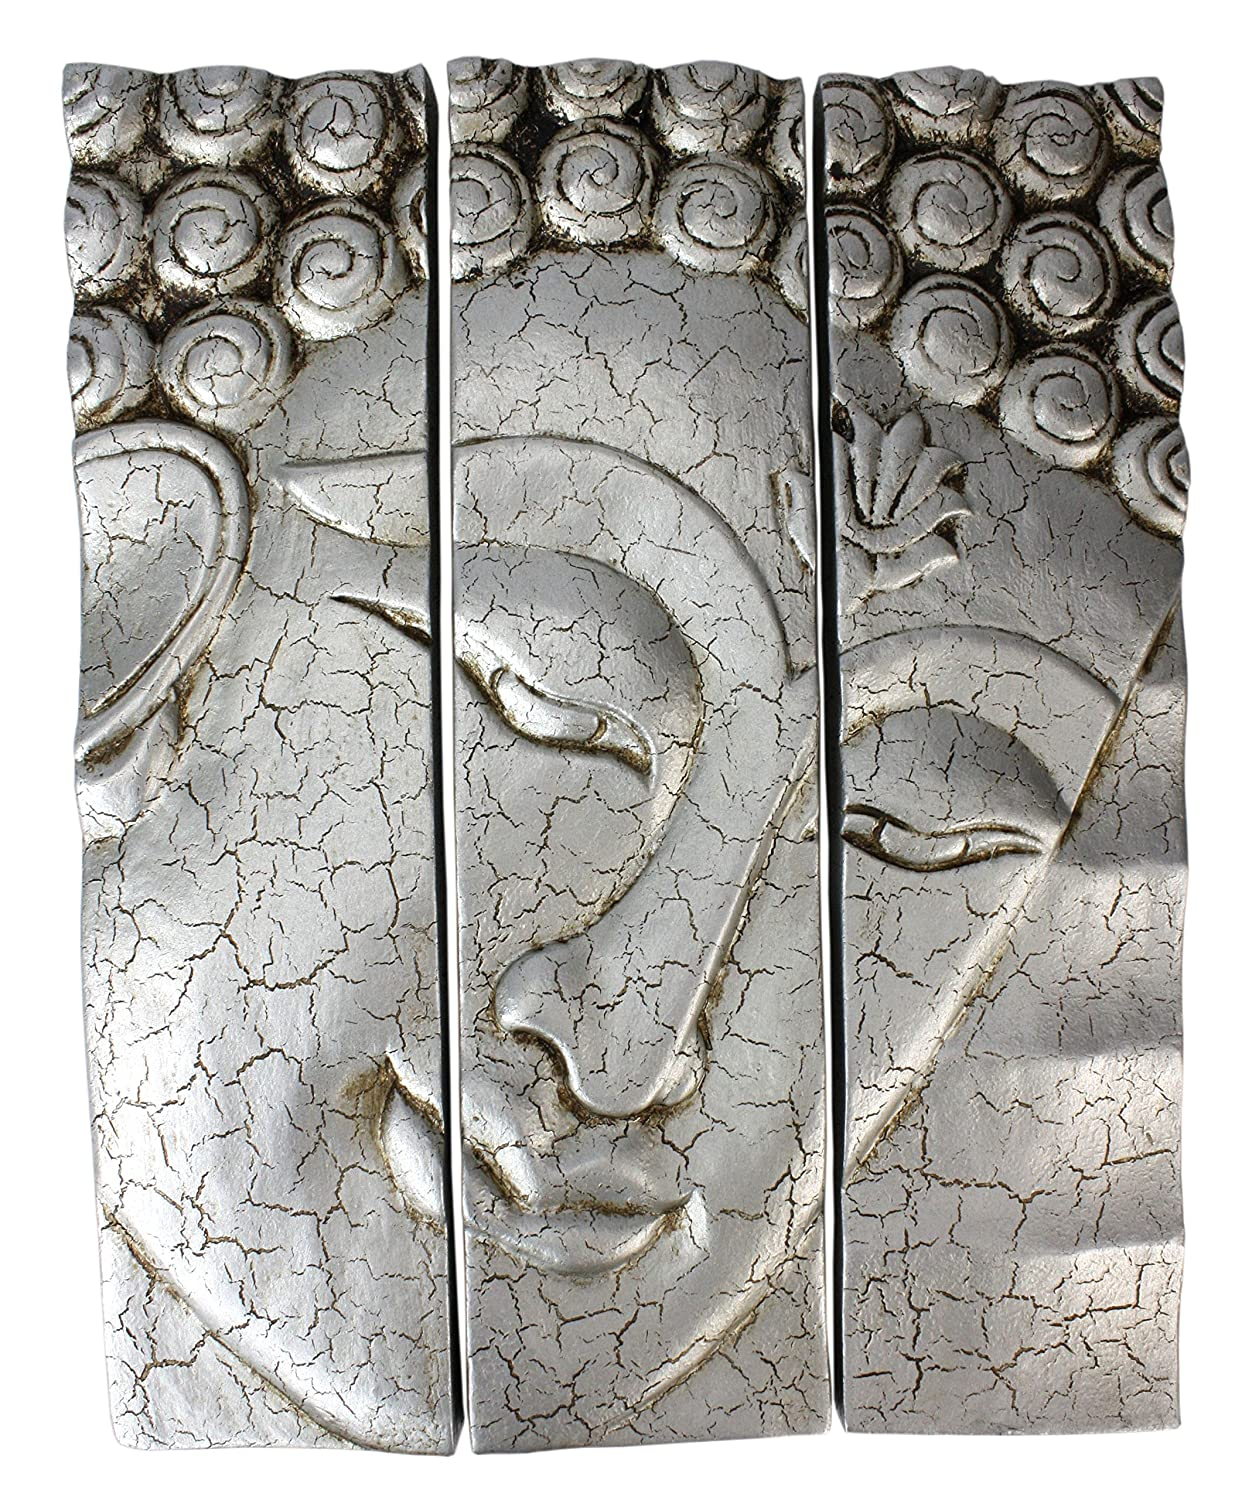 3-part Thai Buddha face panel - cracked Silver finish, carved wood, 38.5cm high Farang